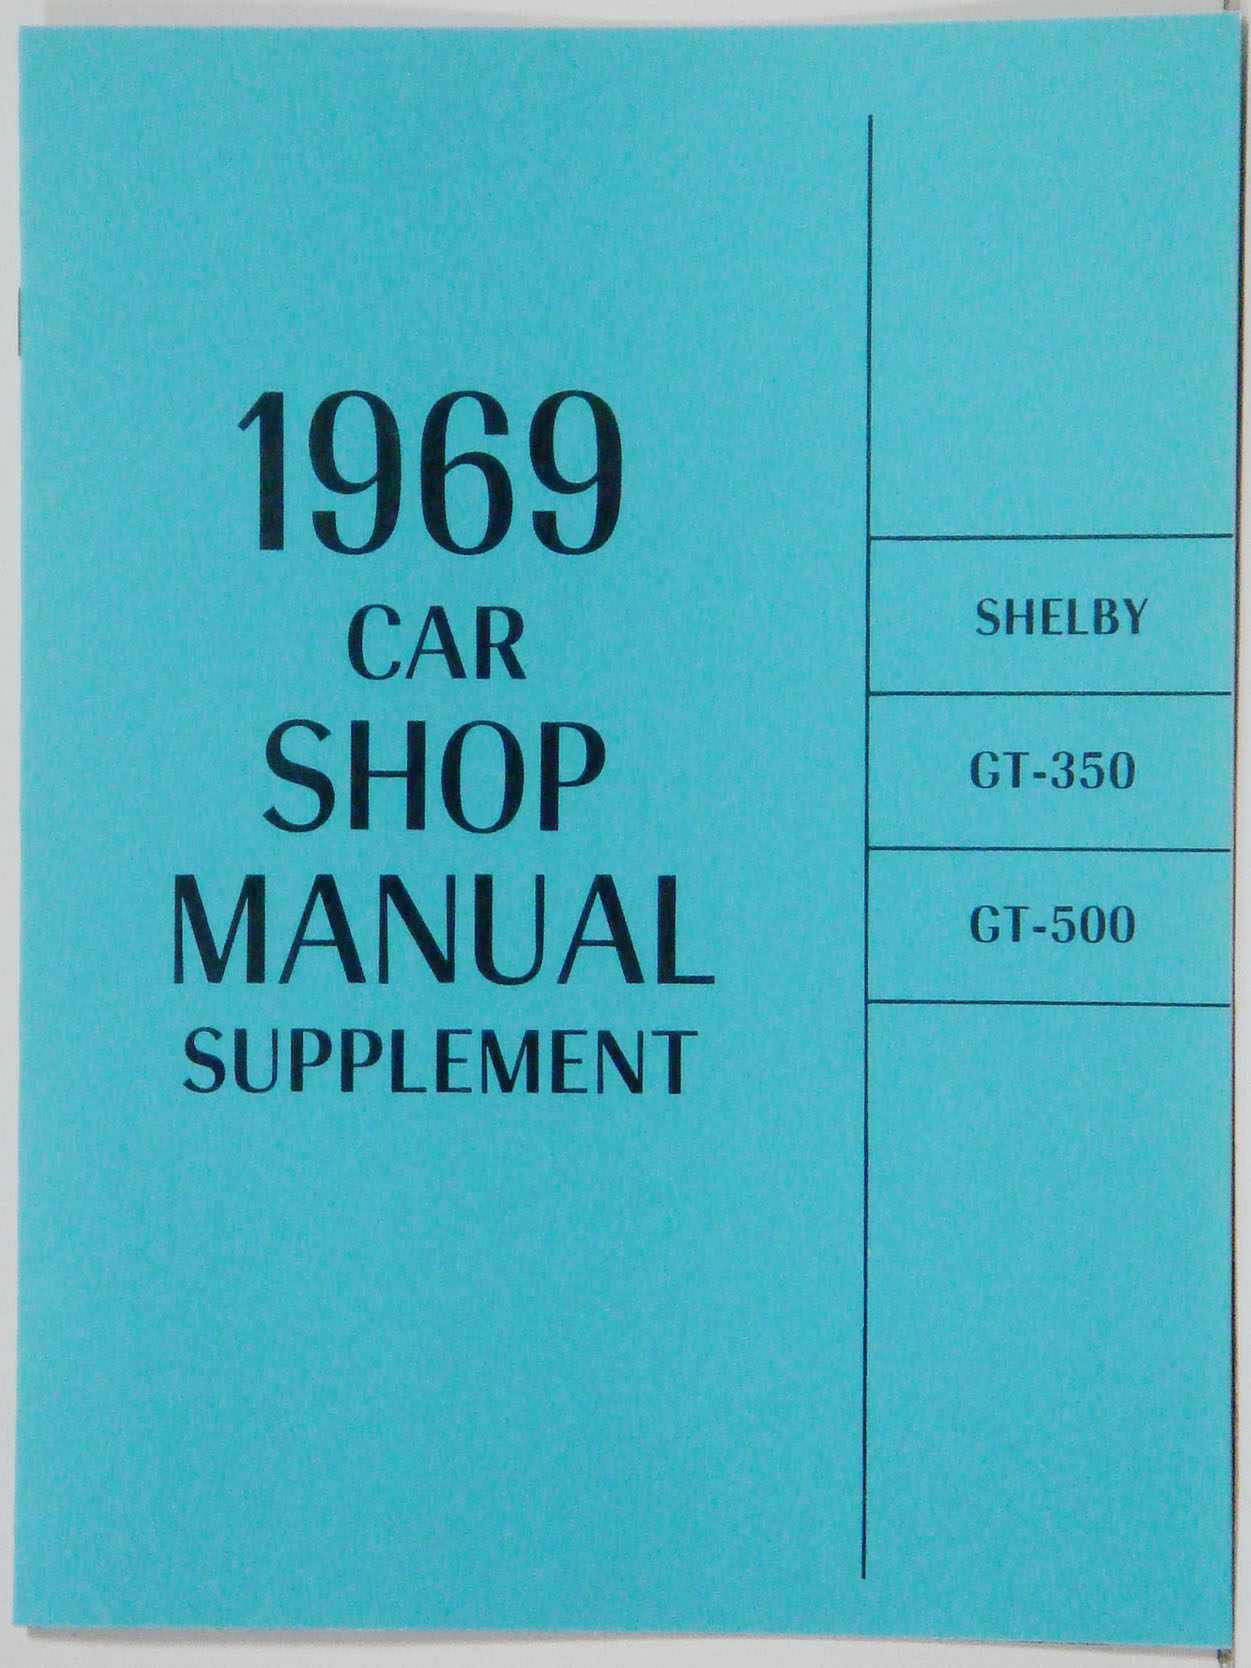 1969 Shelby Mustang, GT-350, GT-500 Shop Manual